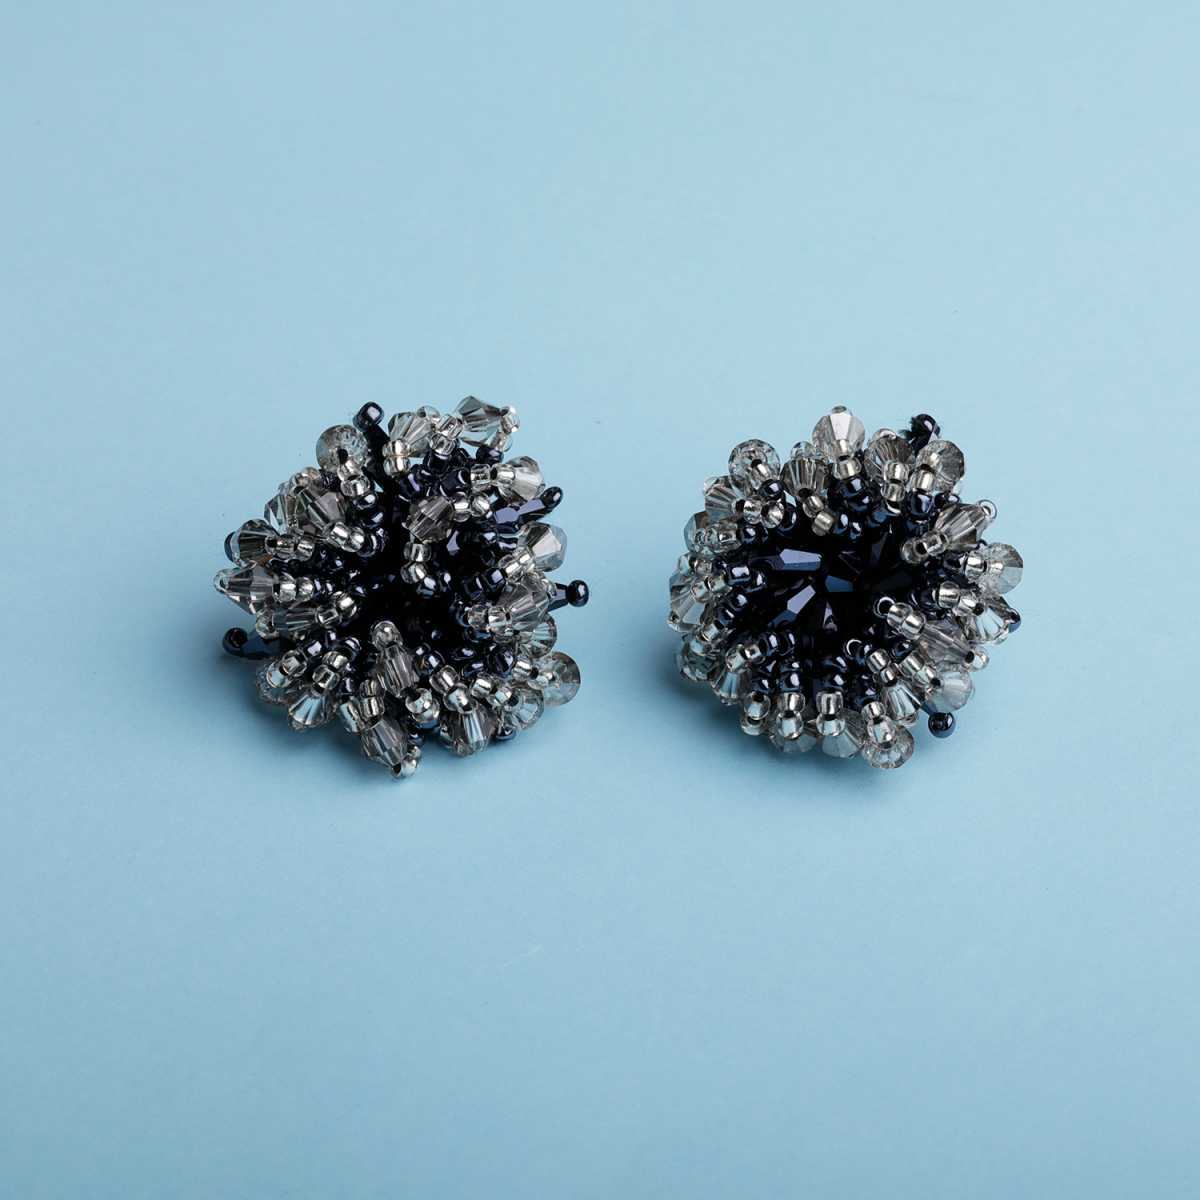 Silver Shine Charming Round Black Artificial Fancy Beads For Girls And Women